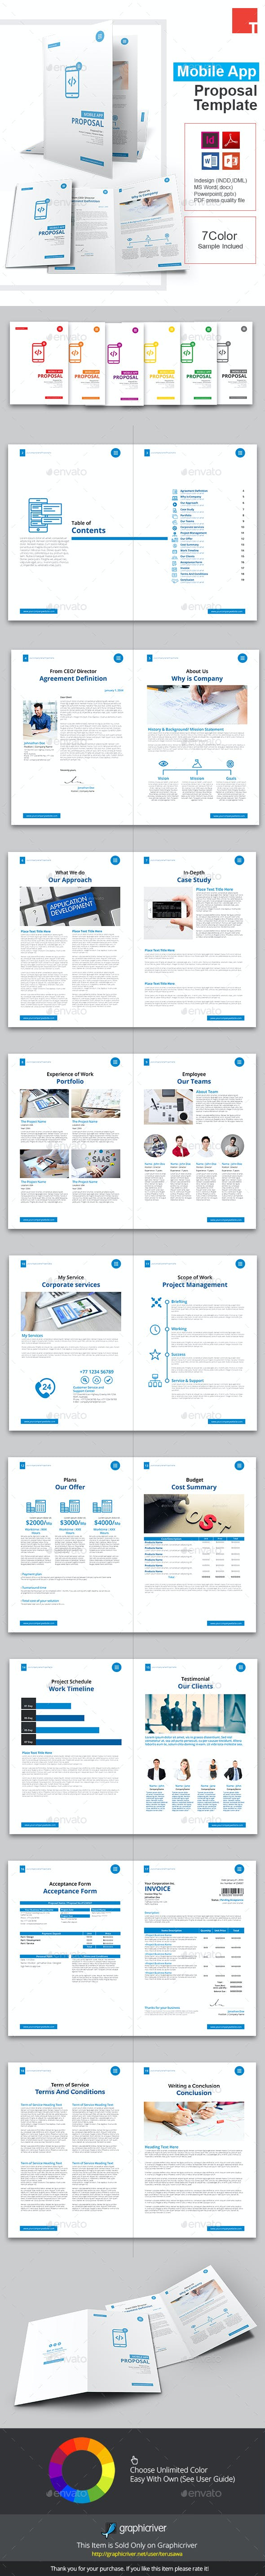 mobile app proposal template by terusawa graphicriver